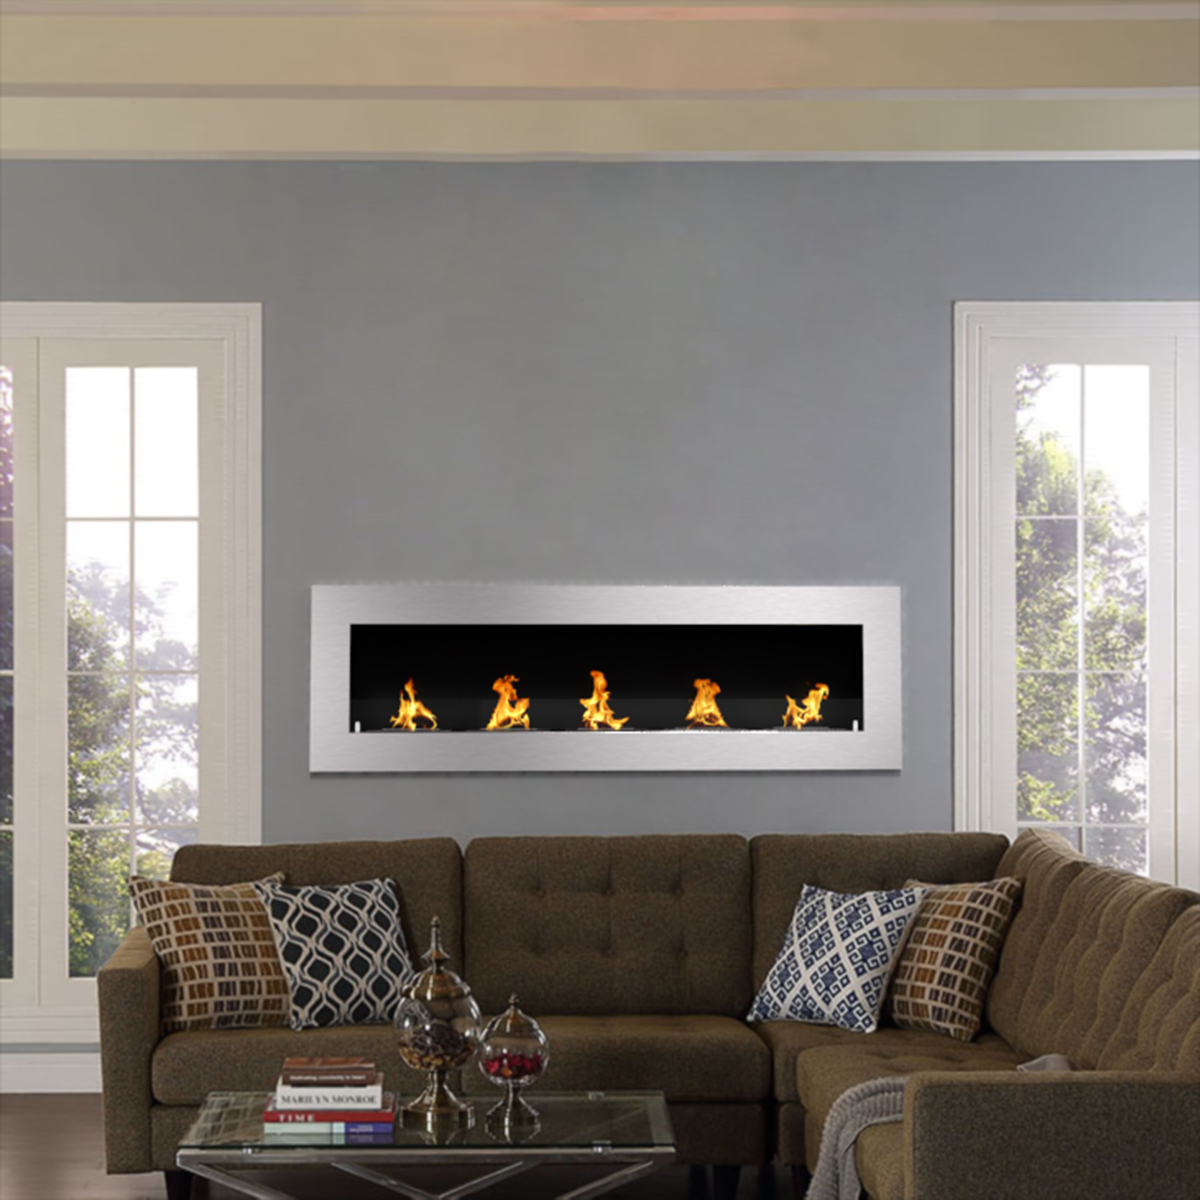 Ventless Wall Mount Gas Fireplace Warren 72 Inch Pro Ventless Built In Recessed Bio Ethanol